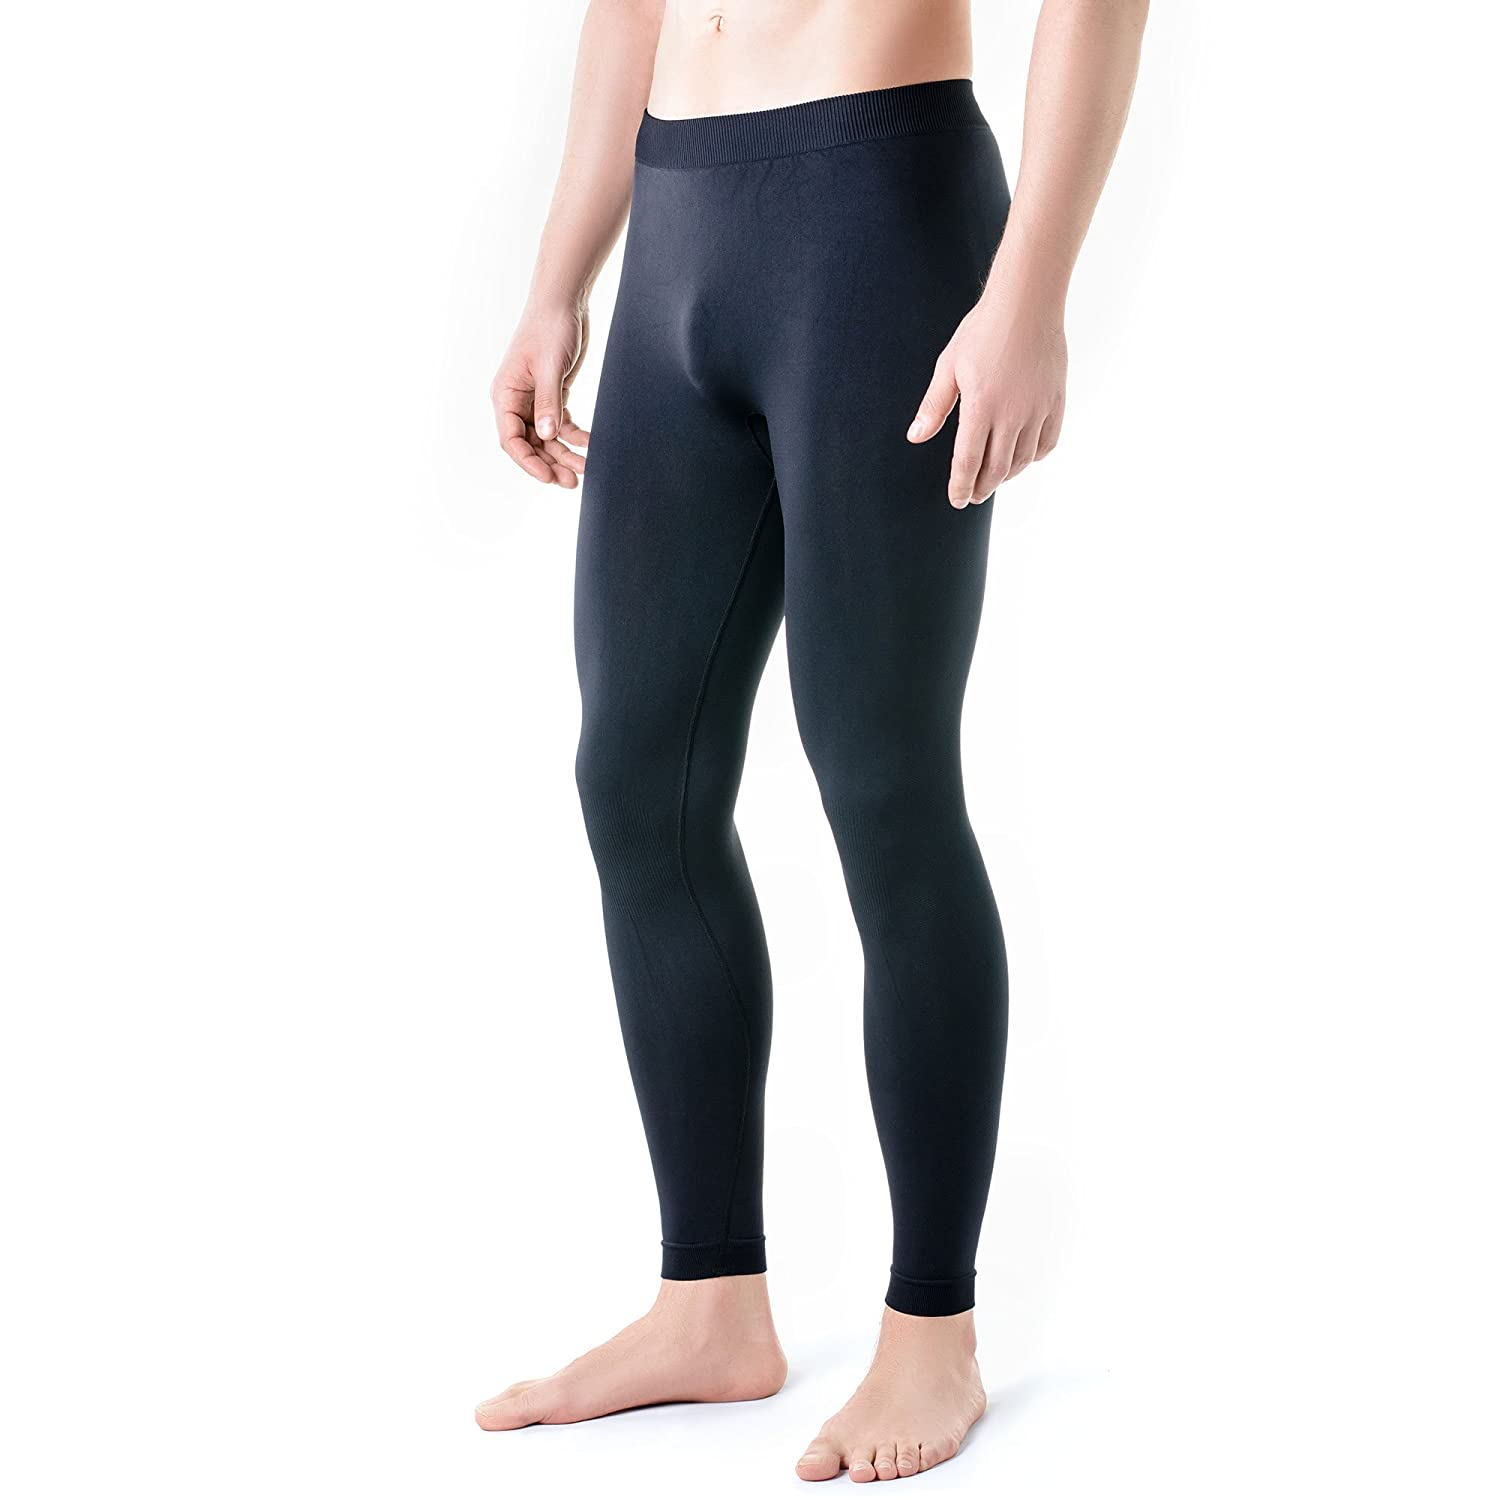 1f305f31f6d8d2 Amazon.com : Basketball Athletic Compression Tights - Best Running Tights  (Black, S/M) : Clothing